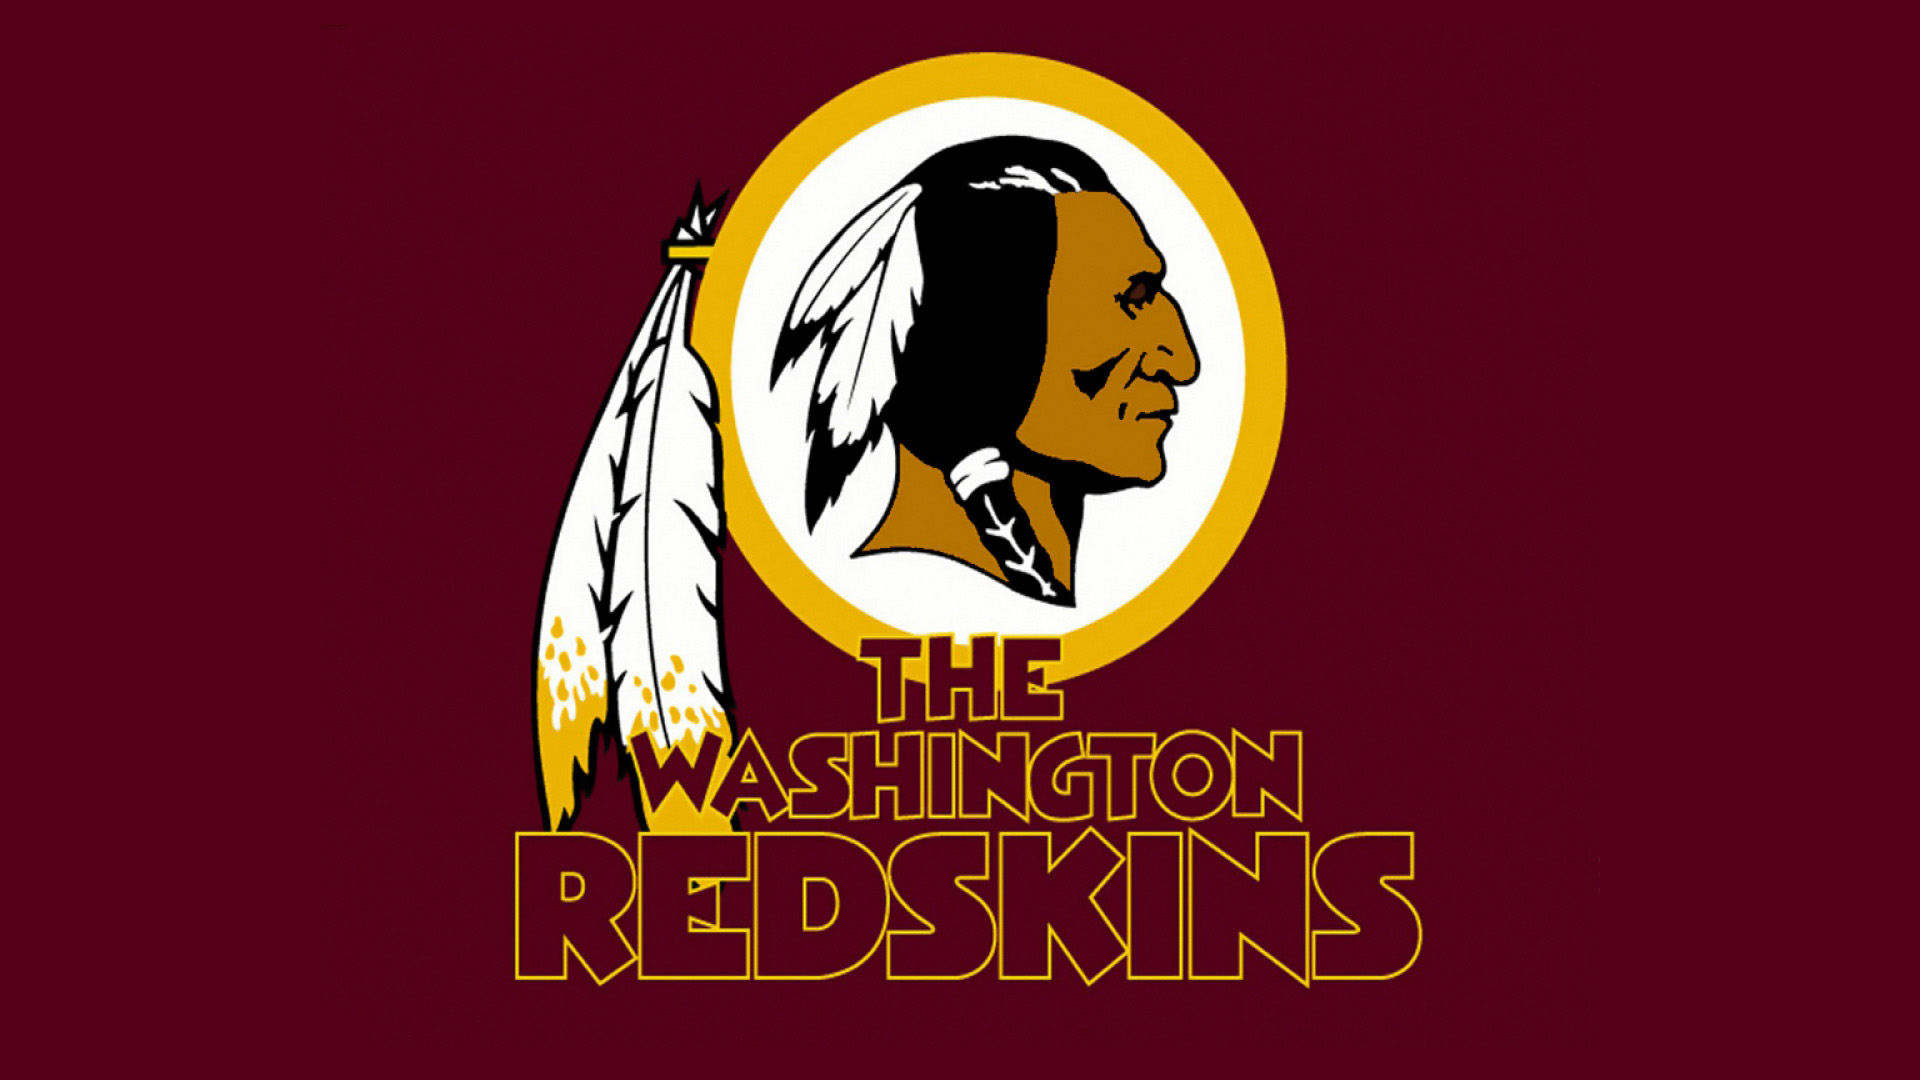 redskins logo red background high resolution hd widescreen wallpaper 1920x1080